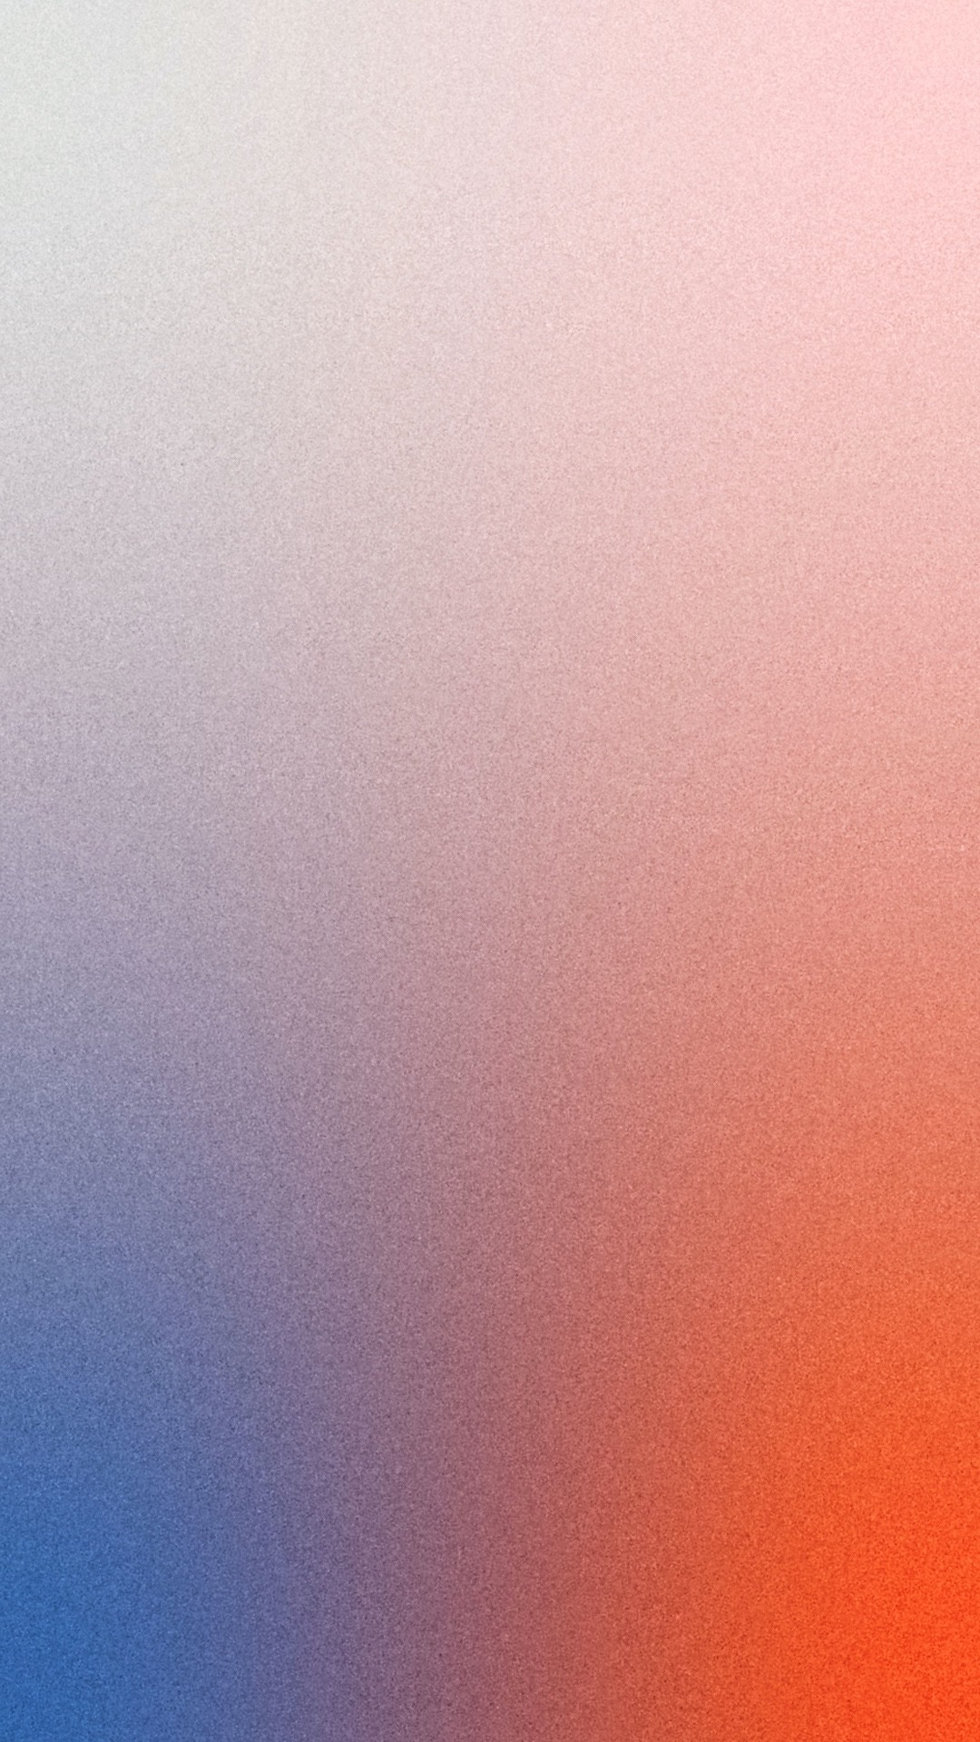 GRADIENT%20BACKGROUND-01%202_edited.jpg